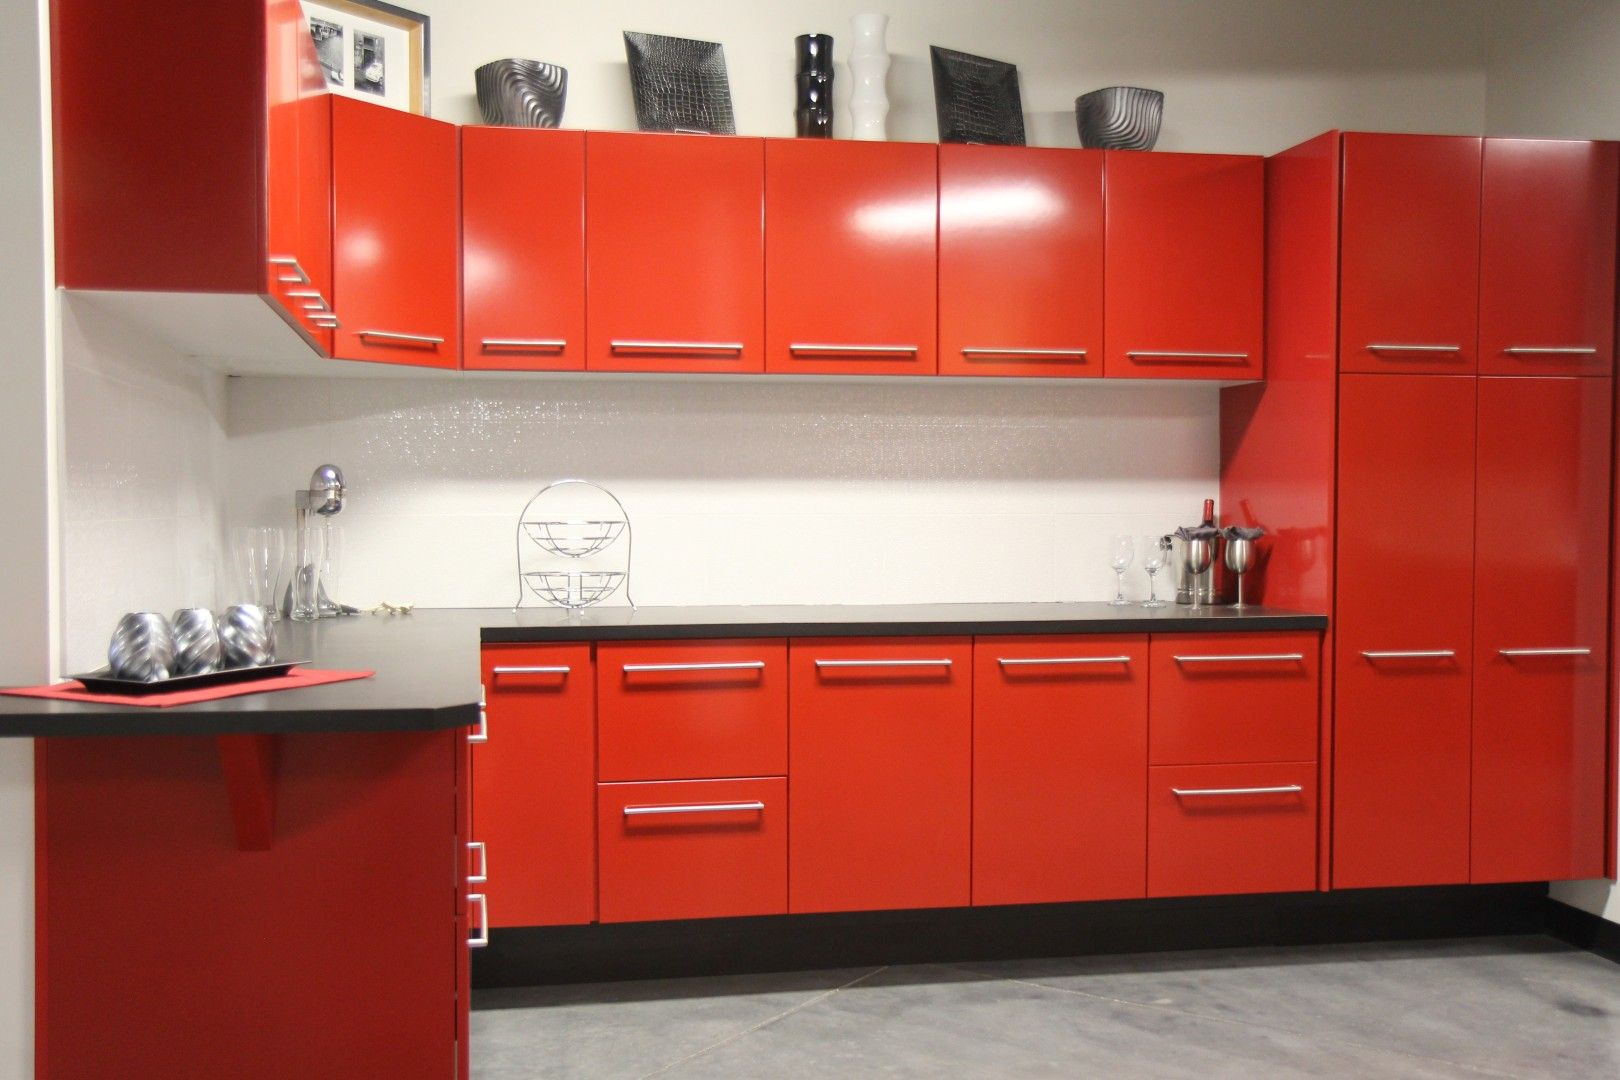 Red Kitchen Design Ideas Pictures And Inspiration Distressed Kitchen Cabinets Kitchen Design Kitchen Plans